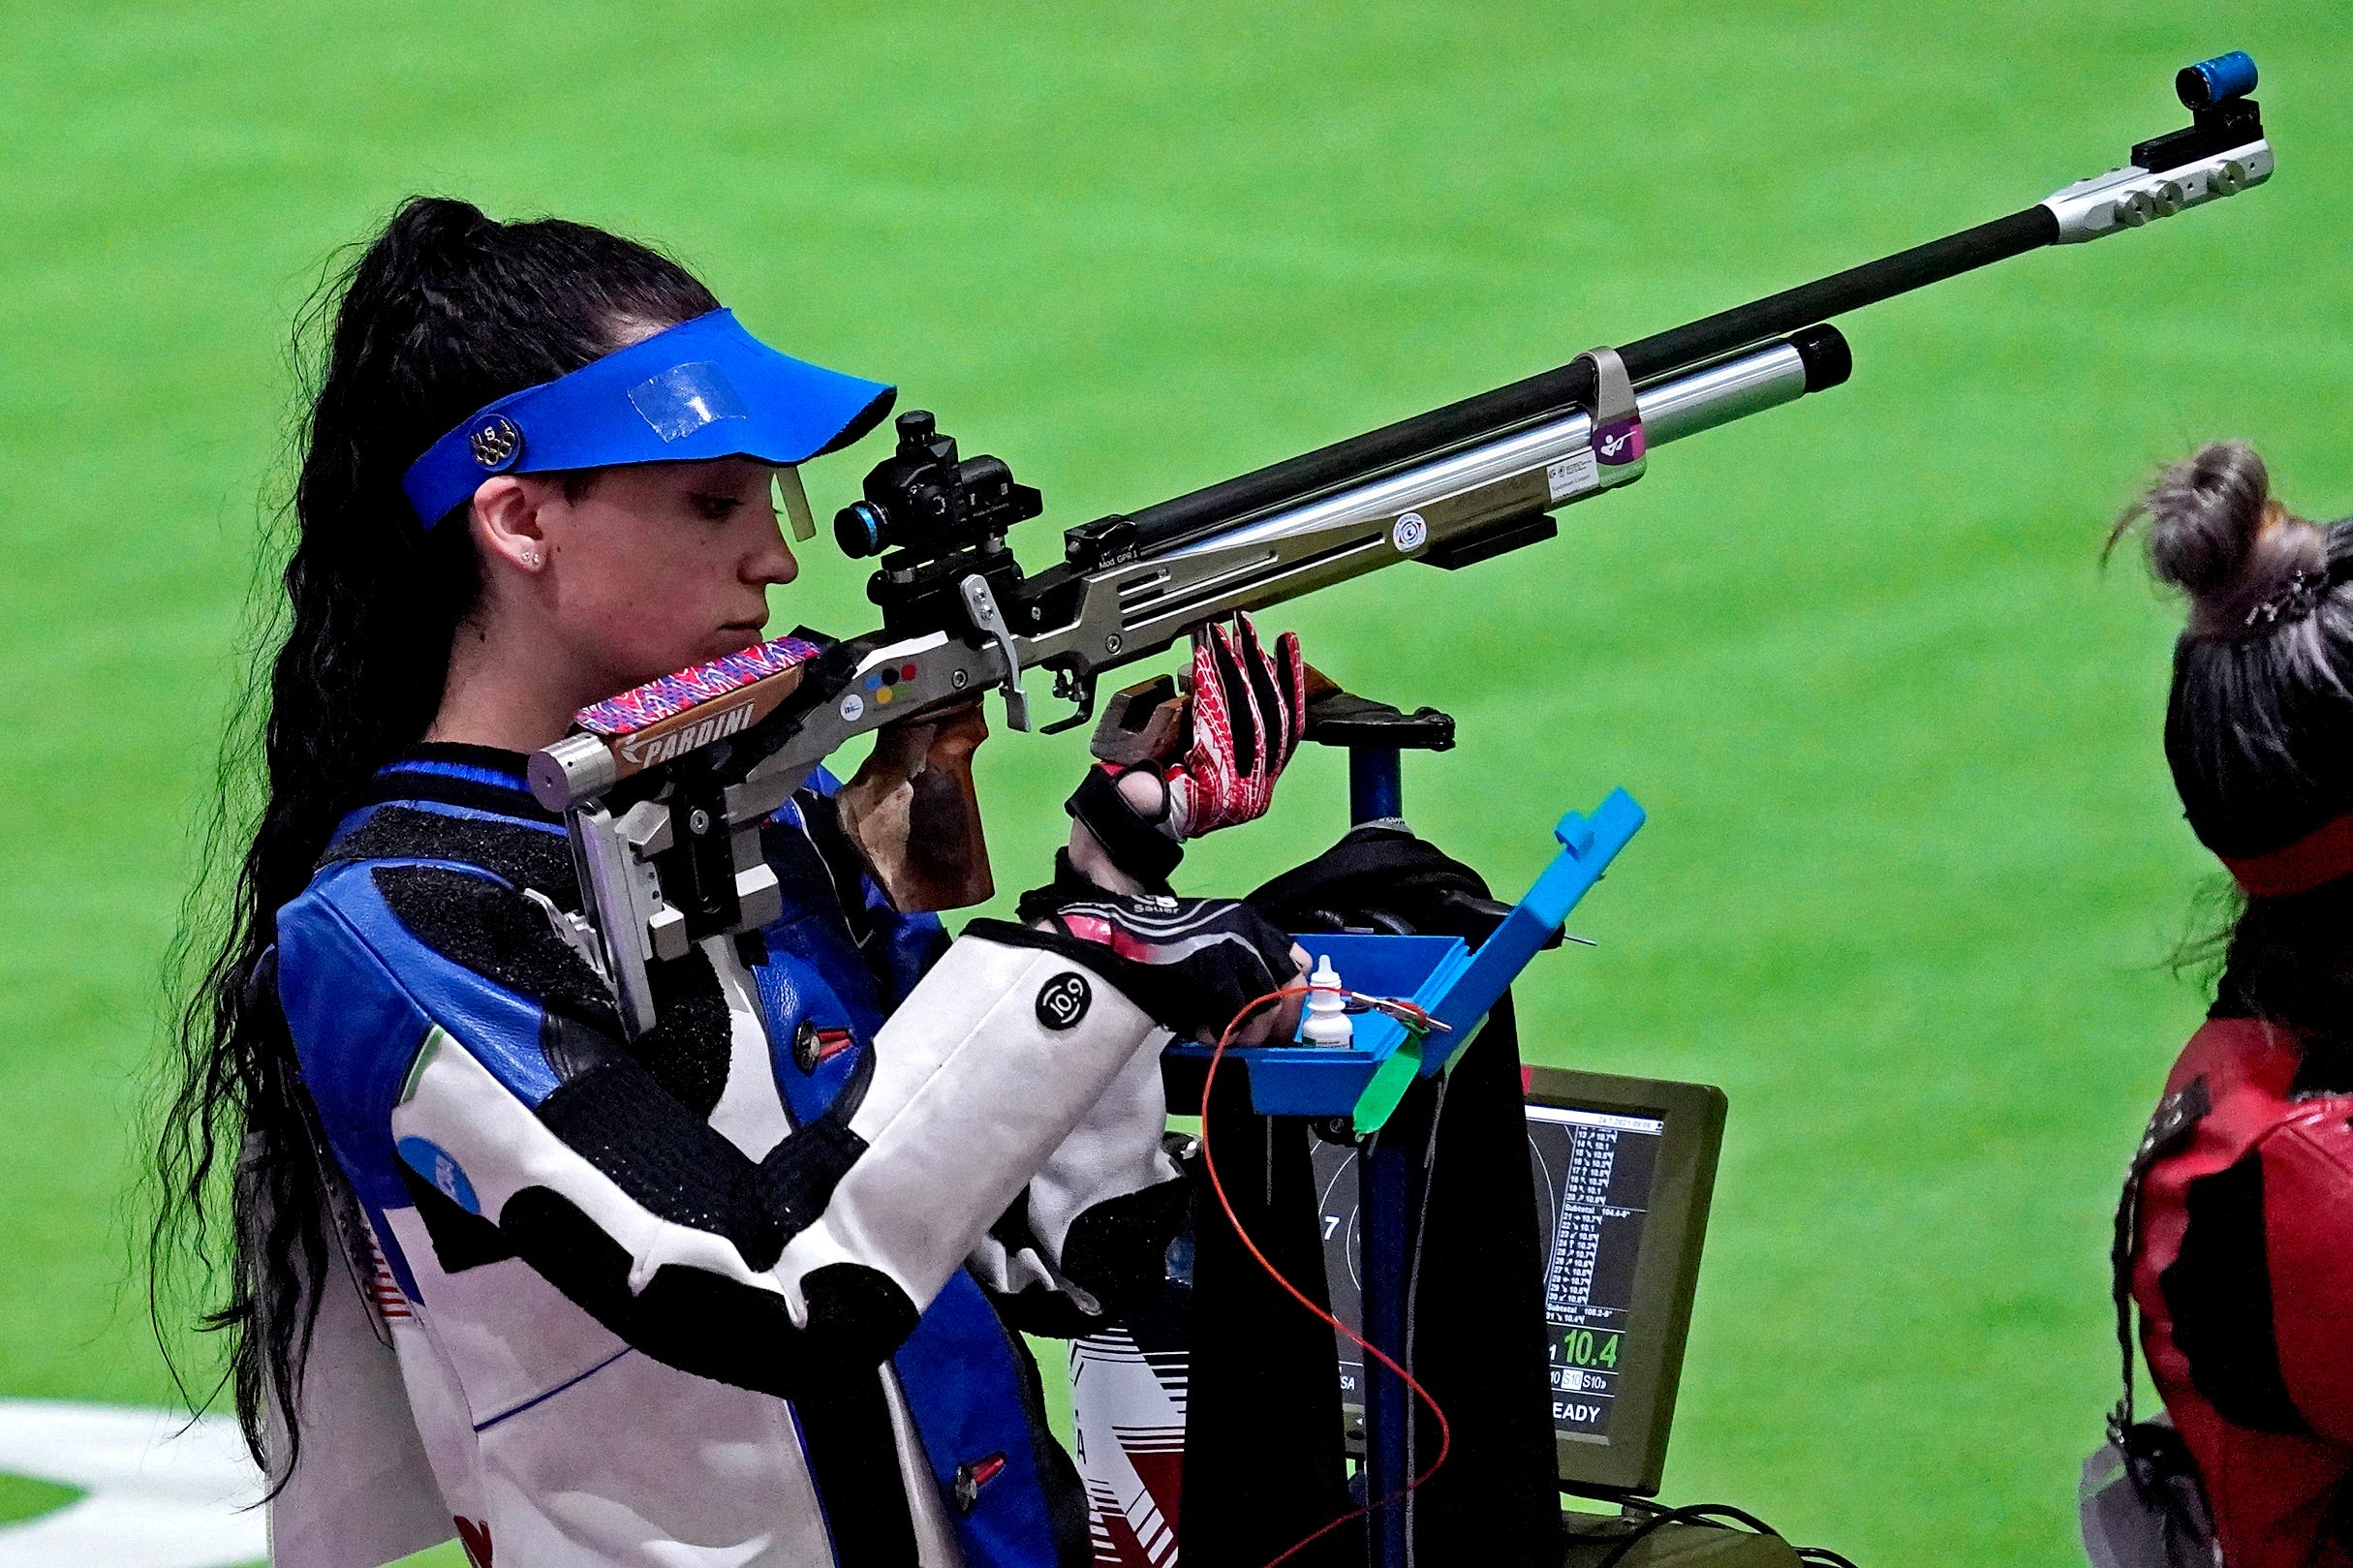 Tokyo Olympics: Live updates: China wins first gold medal of Games, COVID impacting events